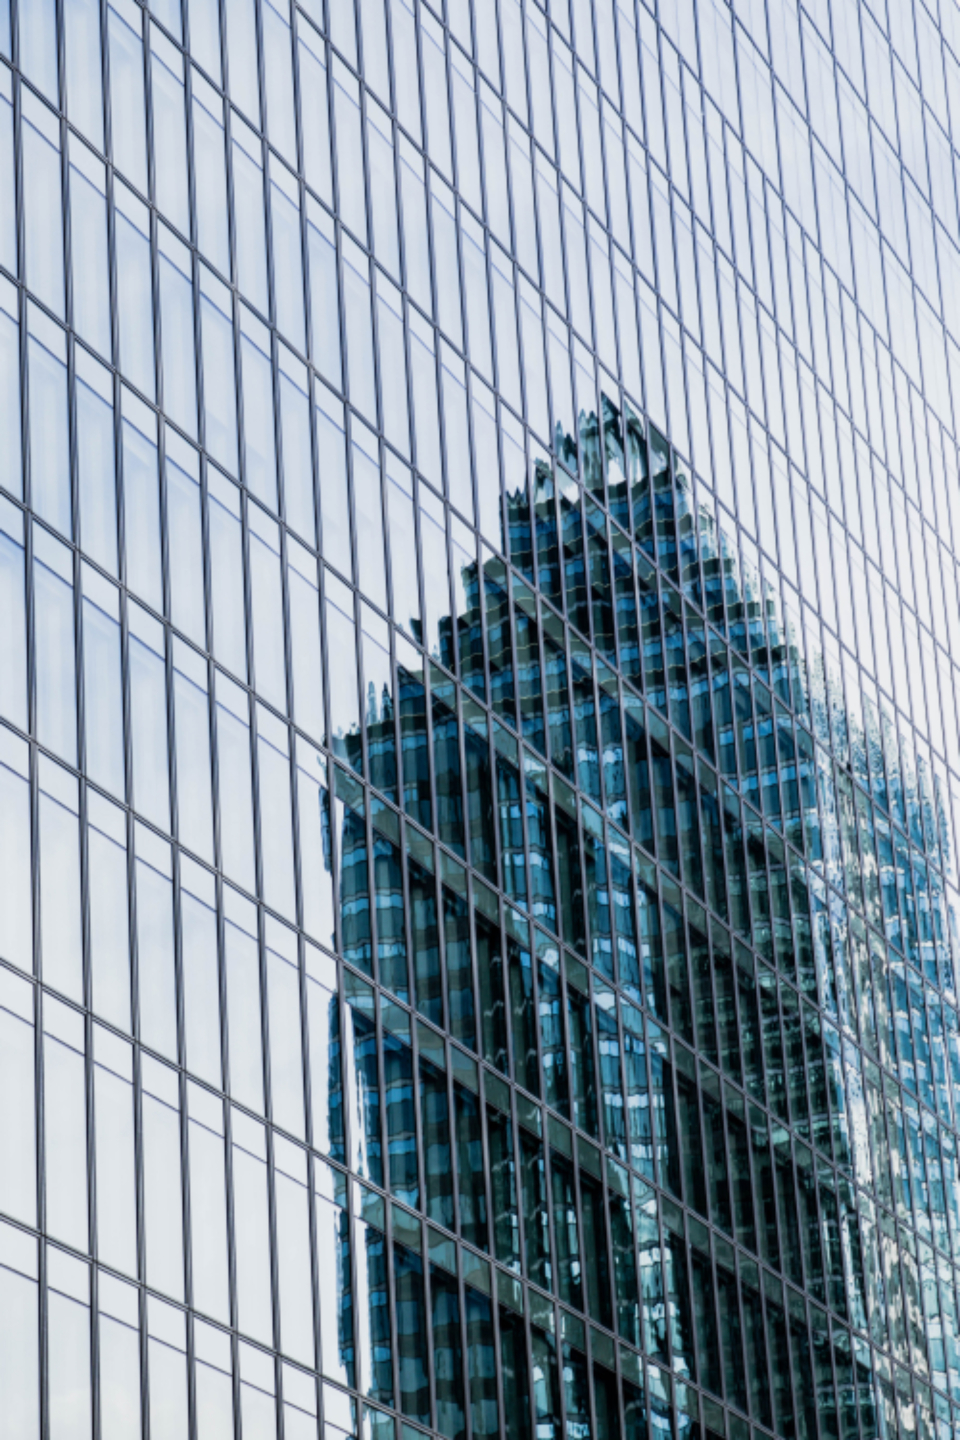 skyscaper city building tall downtown architecture modern urban glass exterior reflection structure business